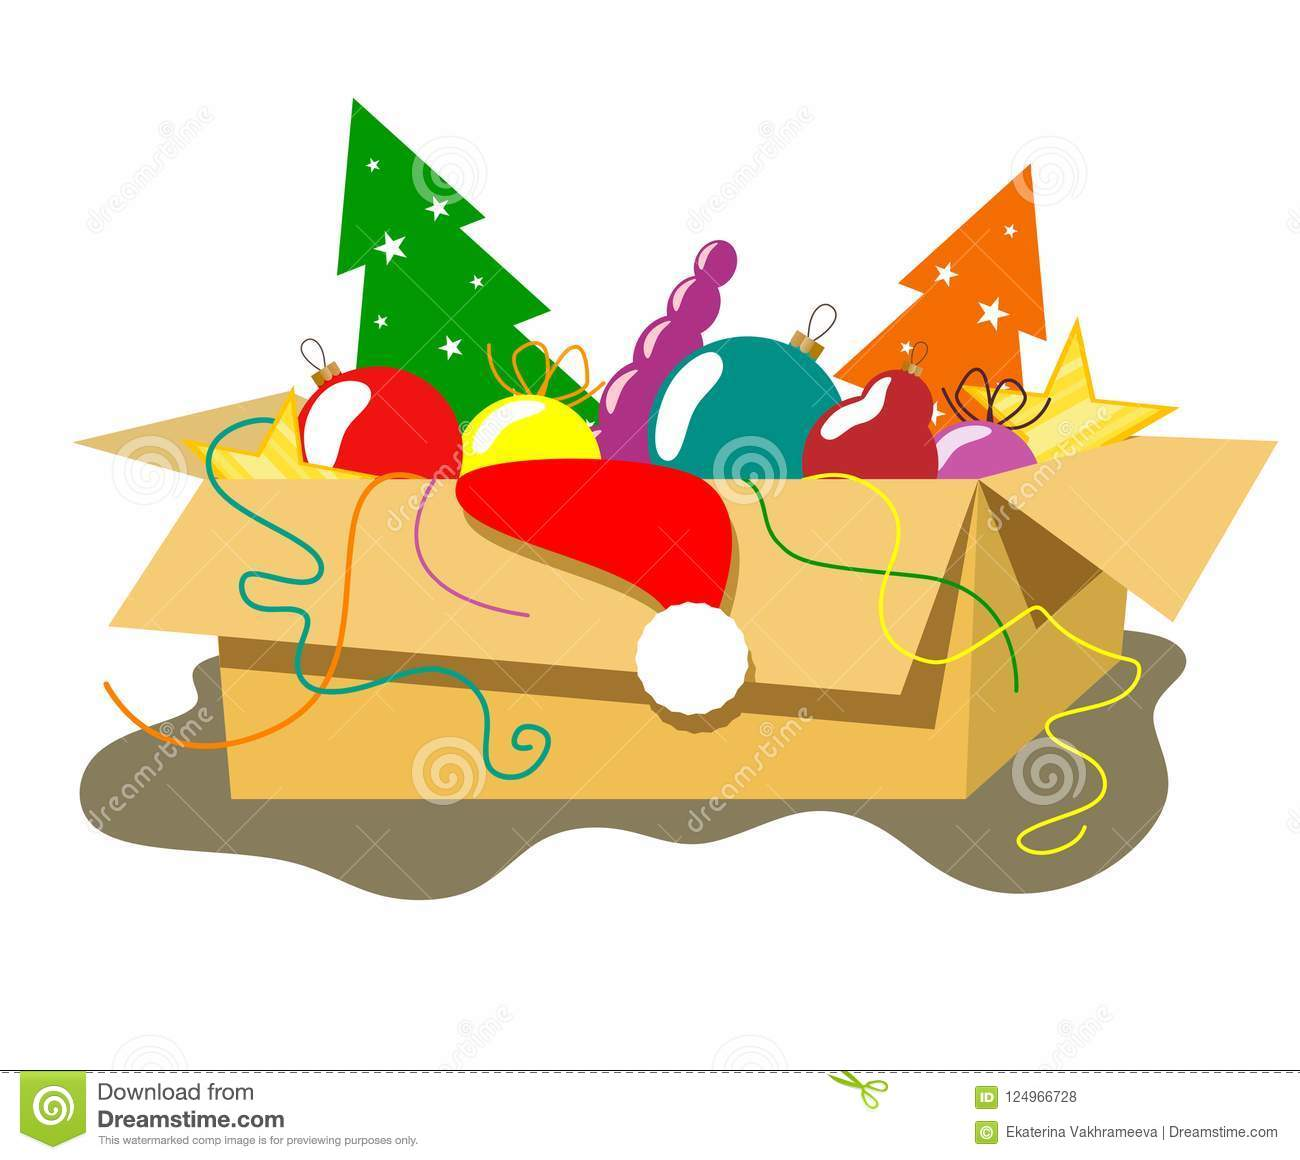 download cardboard box with christmas decorations and decor in the style of flat stock vector - Cardboard Christmas Decorations